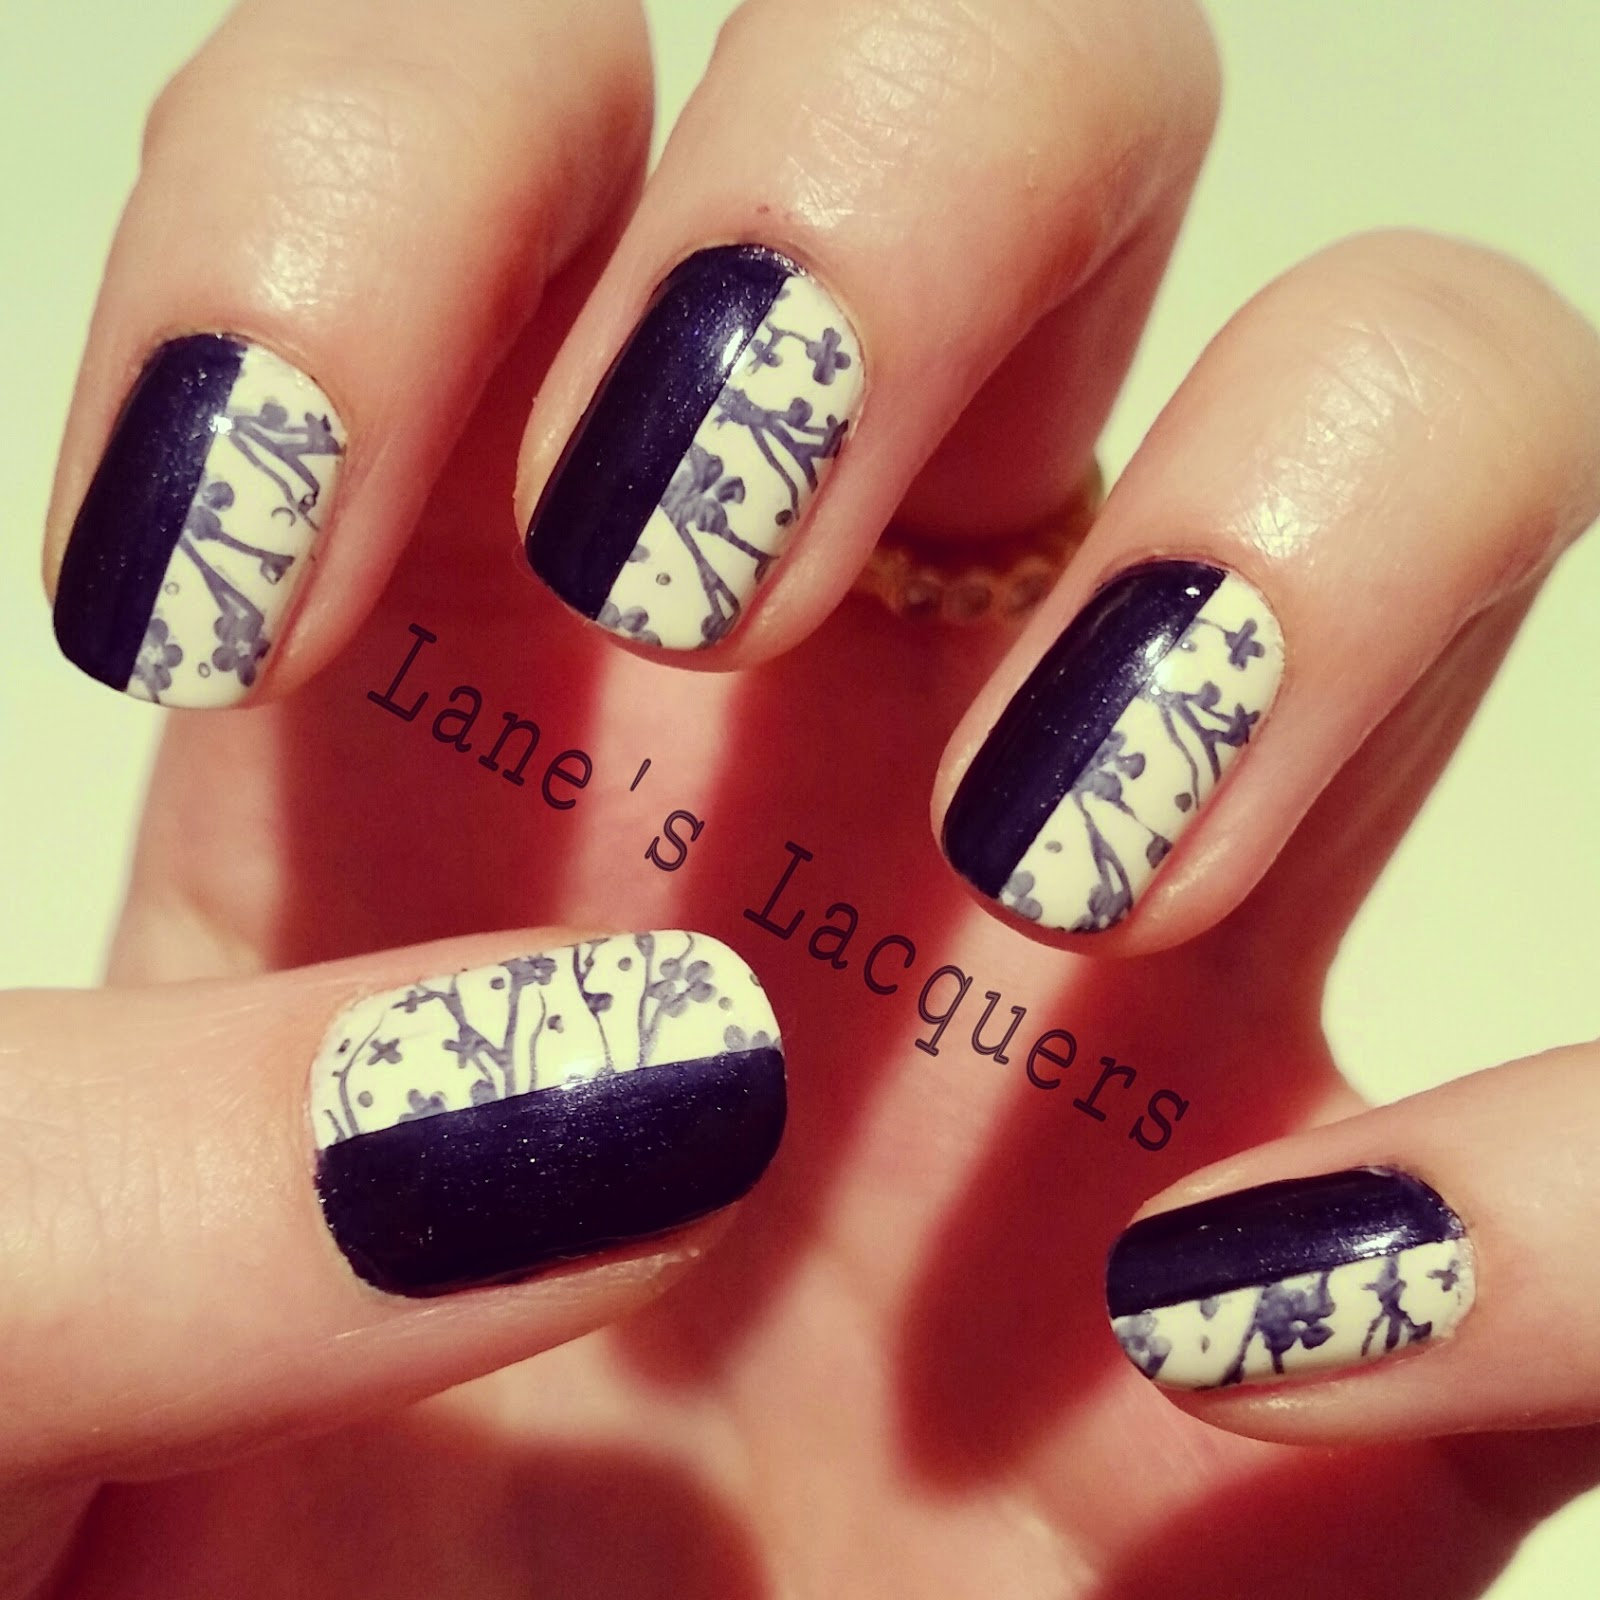 barry-m-coconut-moyou-london-navy-stamping-half-and-half-nail-art